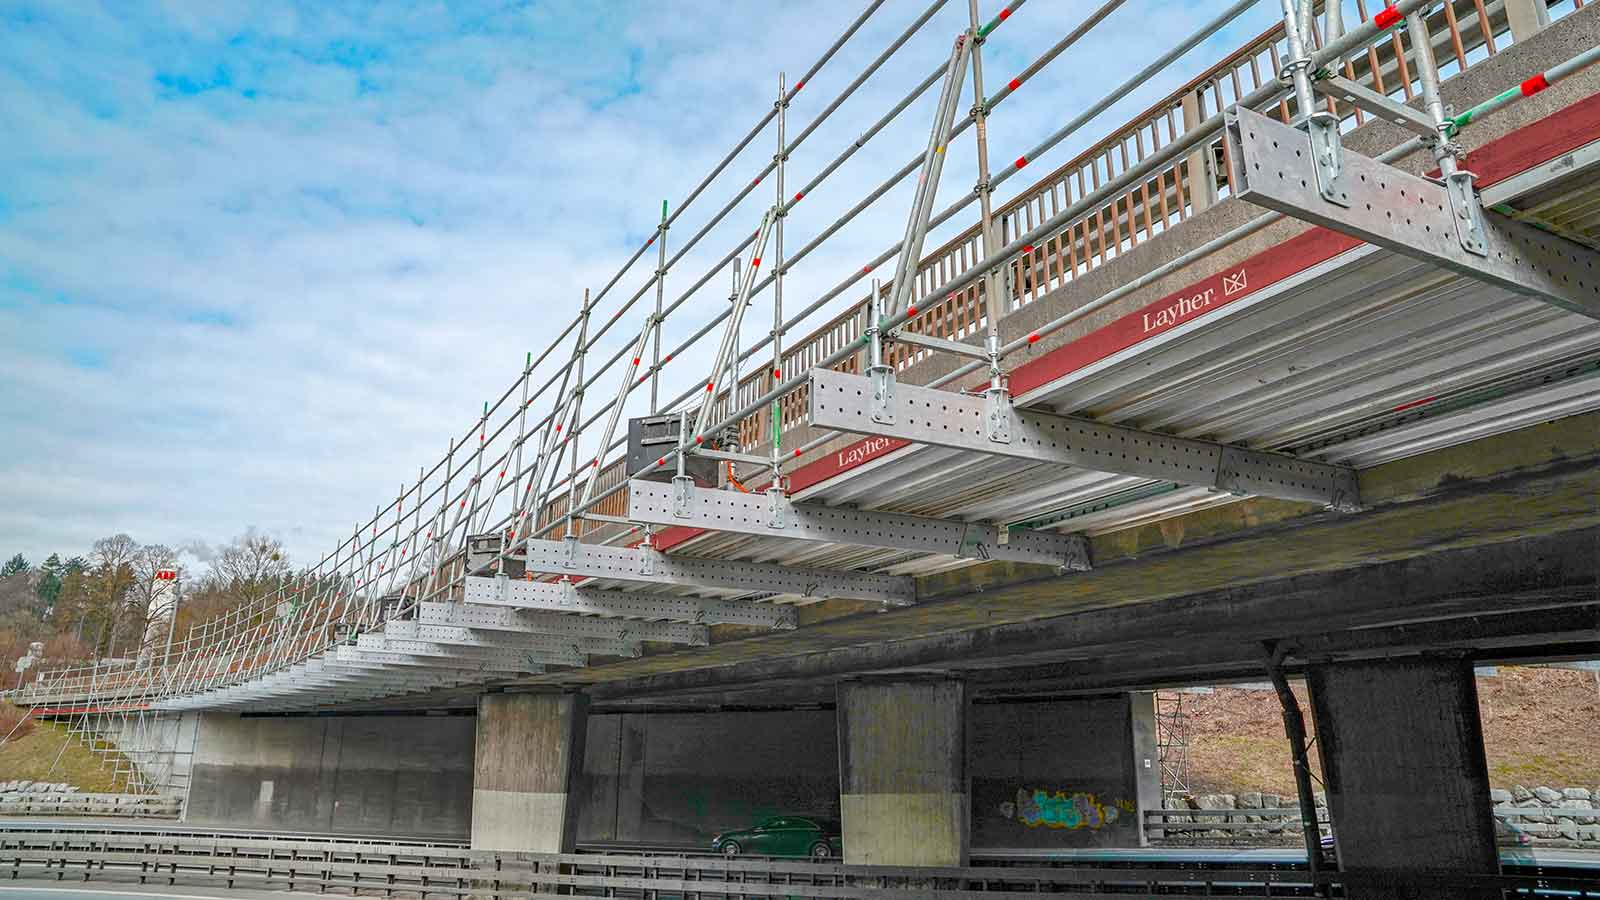 FlexBeam allow maintenance work to be carried out on low clearance bridges